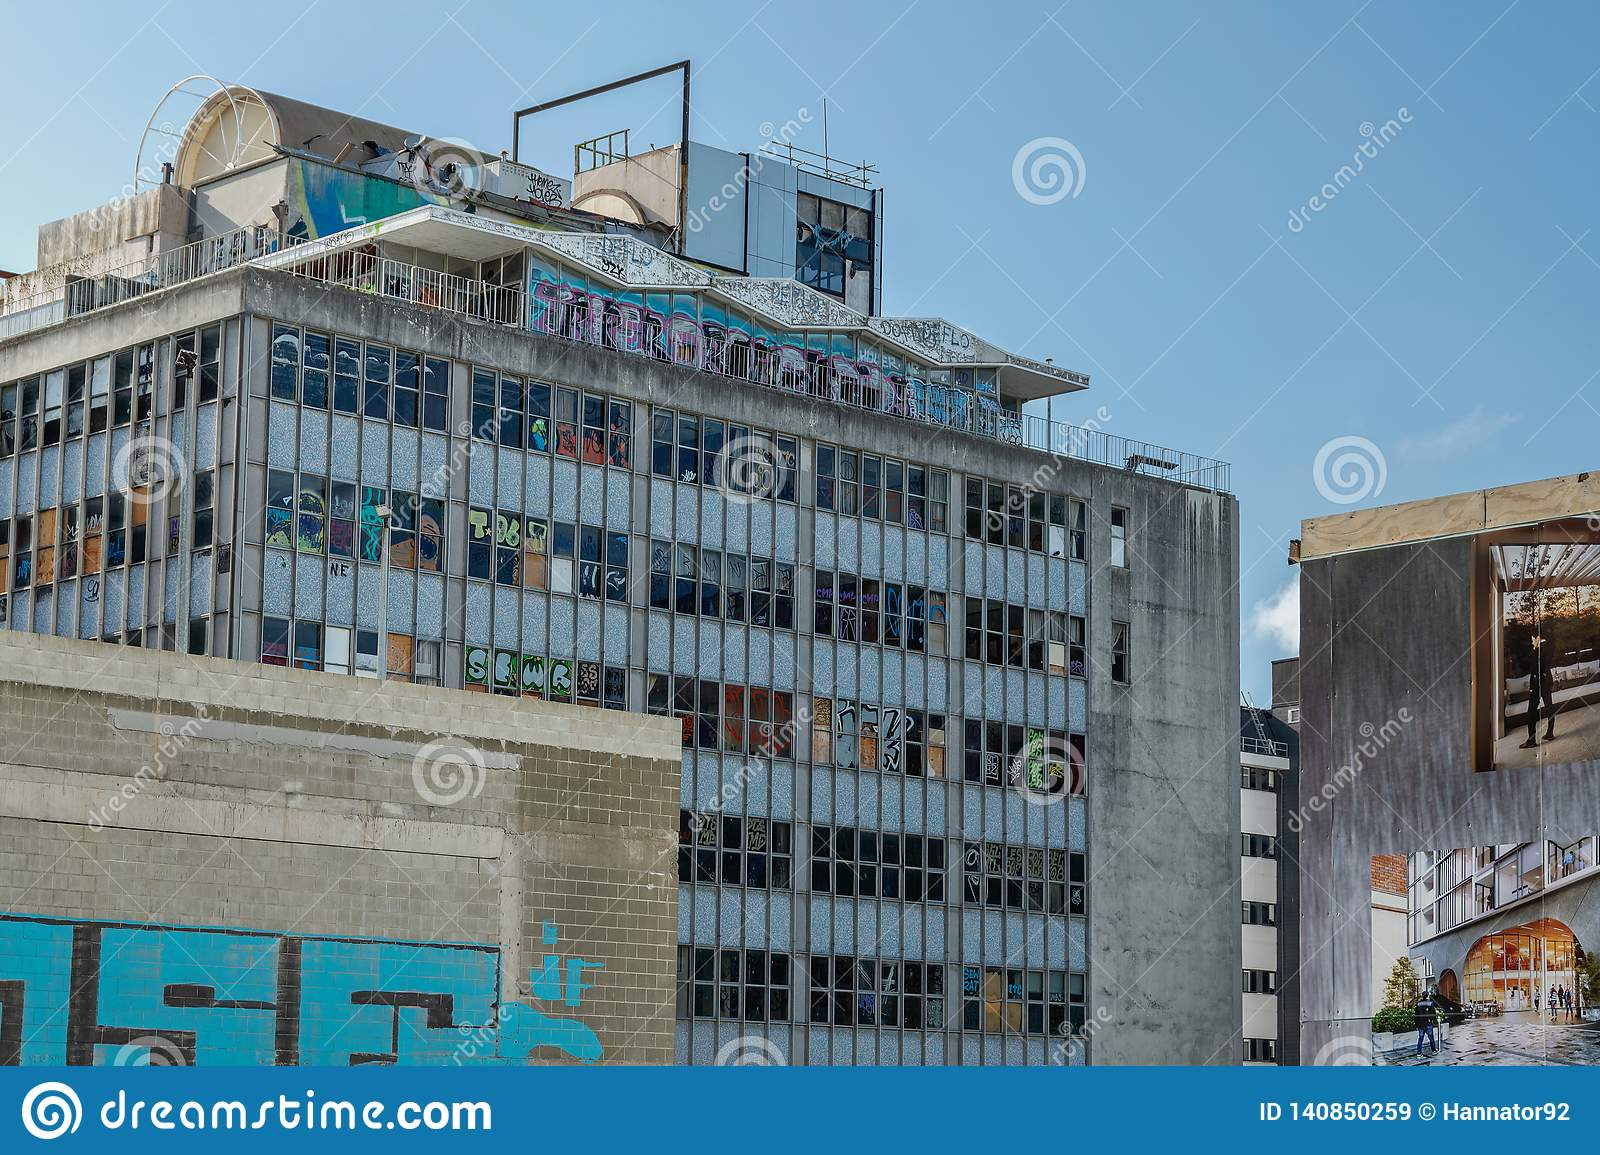 Earthquake damaged office building in downtown Christchurch, south island of New Zealand